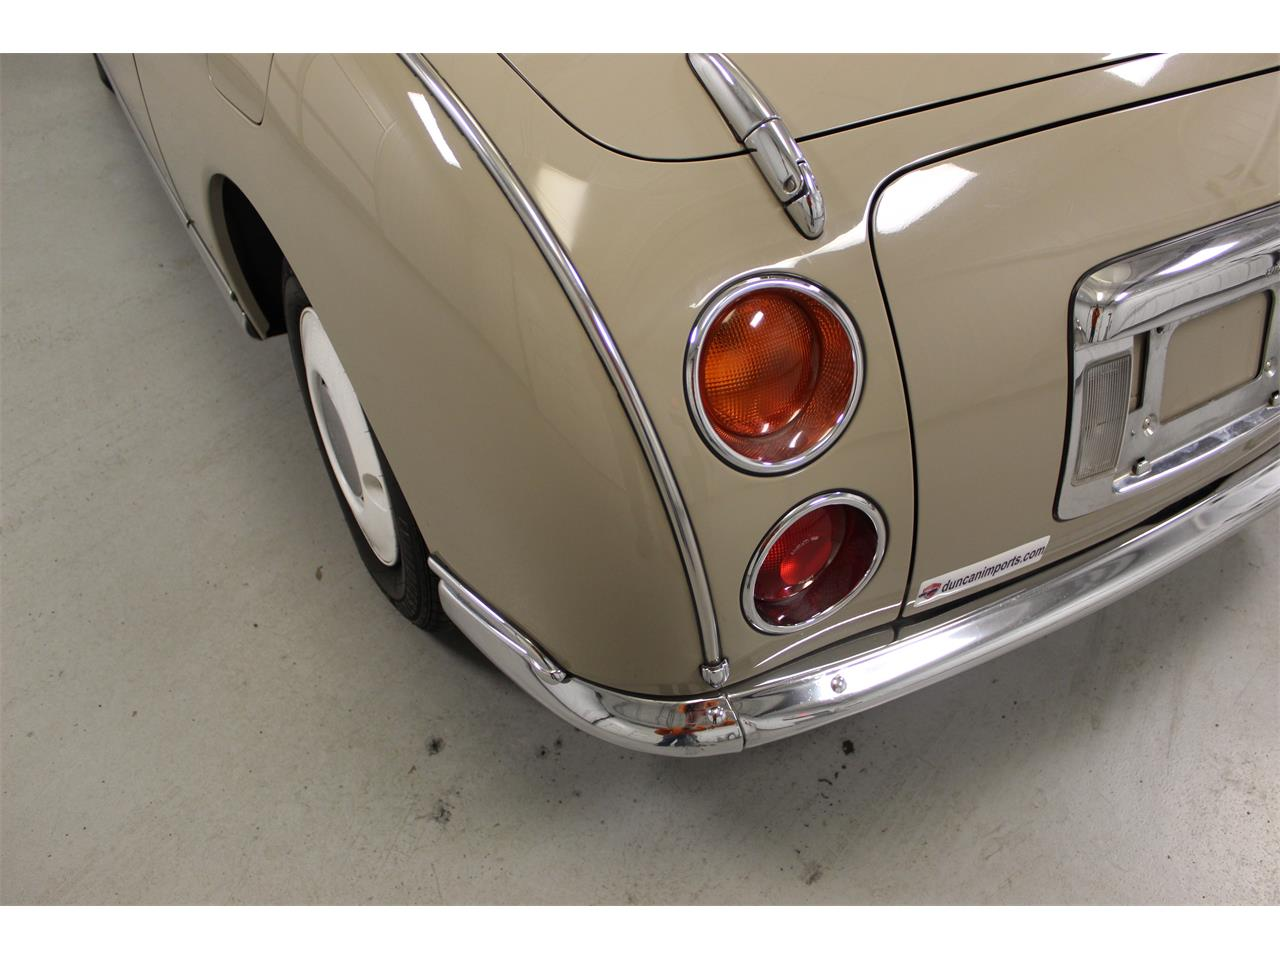 1991 Nissan Figaro for sale in Christiansburg, VA – photo 36